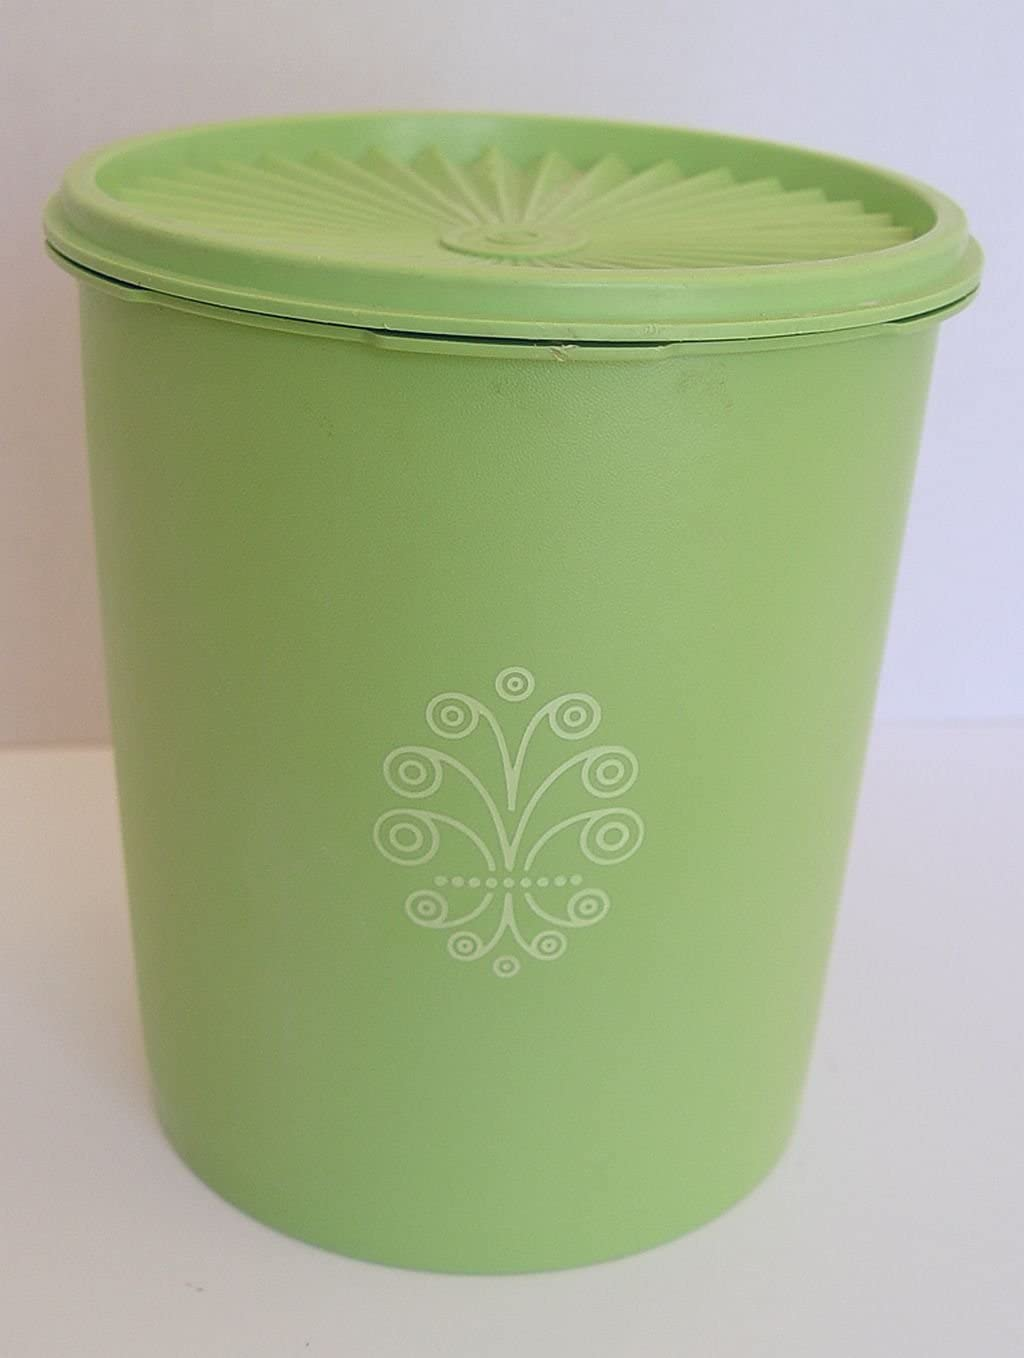 Vintage Tupperware Apple Green Servalier 12 Cup Canister with Matching Sunburst Lid 7.5 Tall